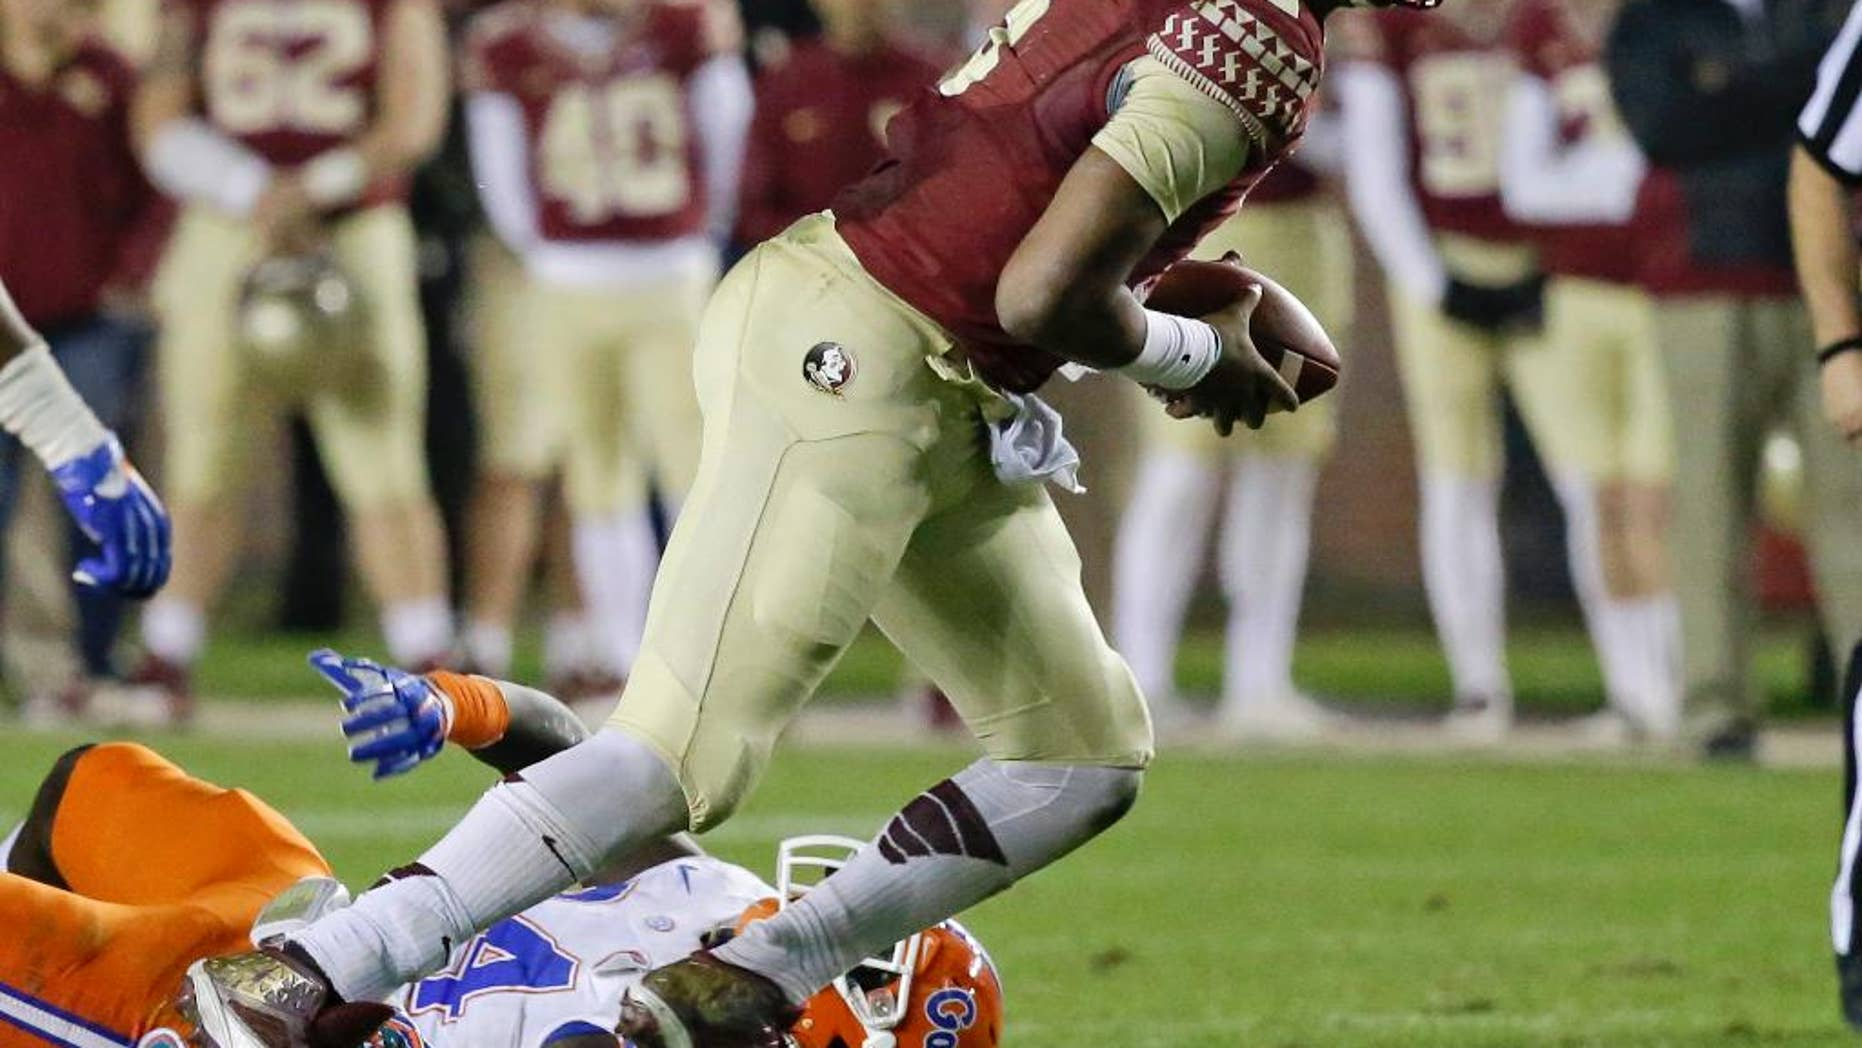 Florida State quarterback Jameis Winston scrambles out of the pocket as he is pressured by Florida defensive back Brian Poole during the second half of an NCAA college football game in Tallahassee, Fla., Saturday, Nov. 29, 2014. Florida State won 24-19. (AP Photo/John Raoux)